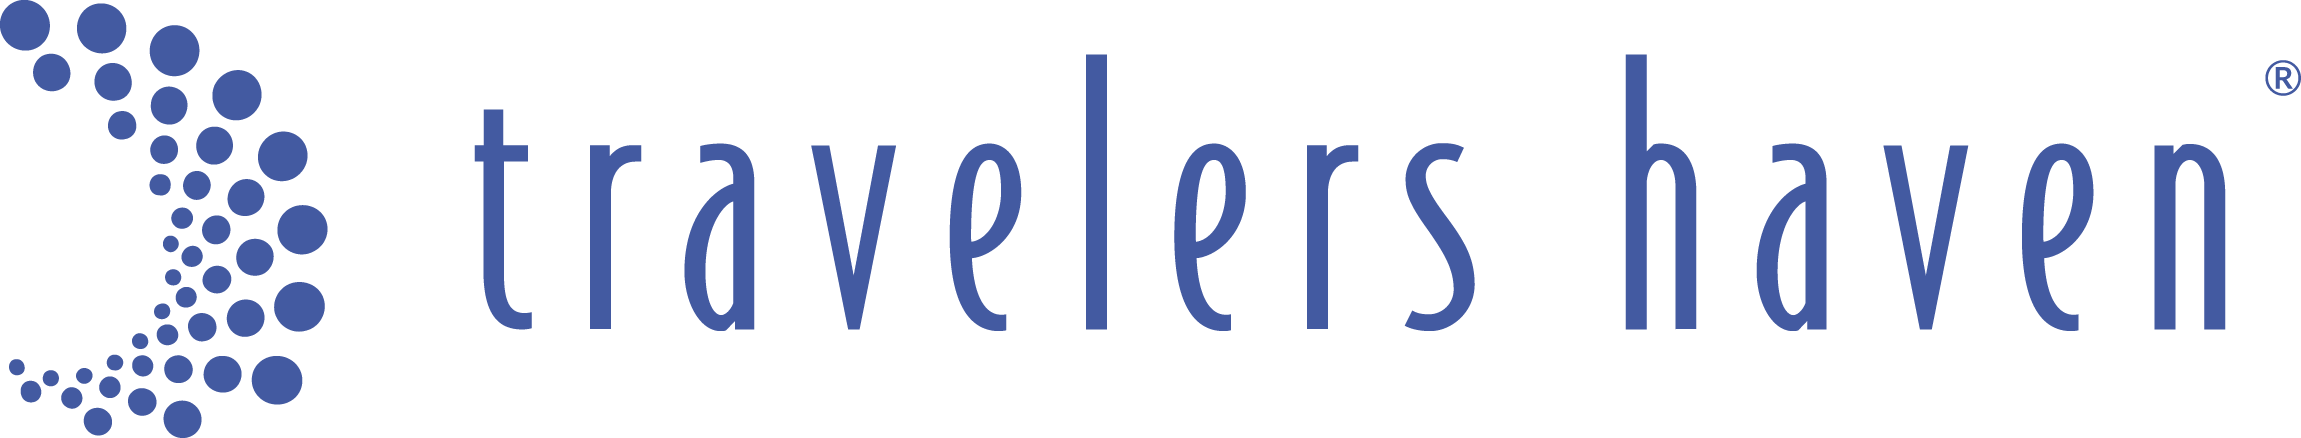 Travelers Haven logo